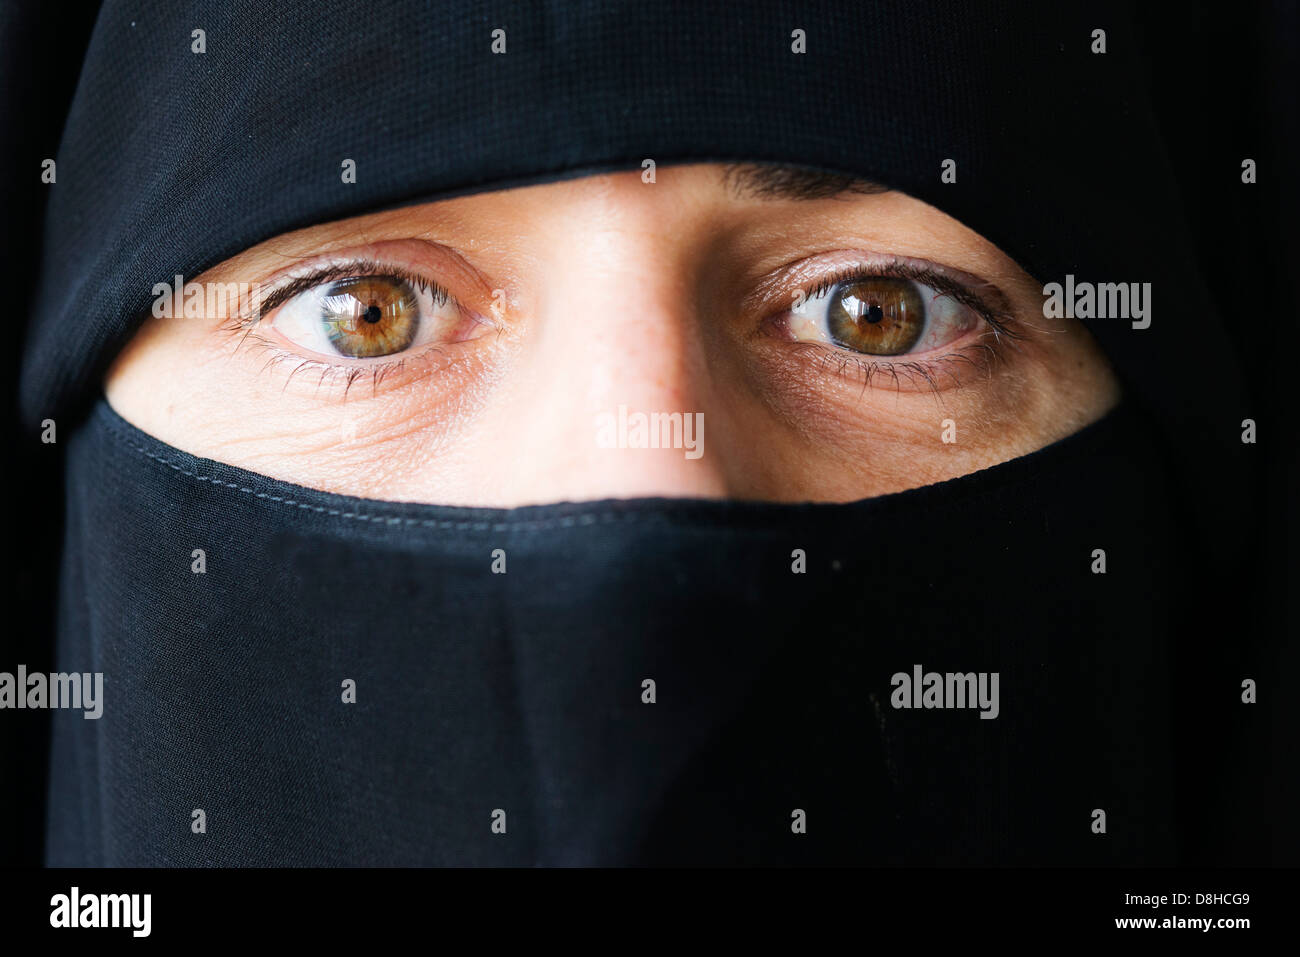 Arab woman wearing traditional black niqab face covering - Stock Image